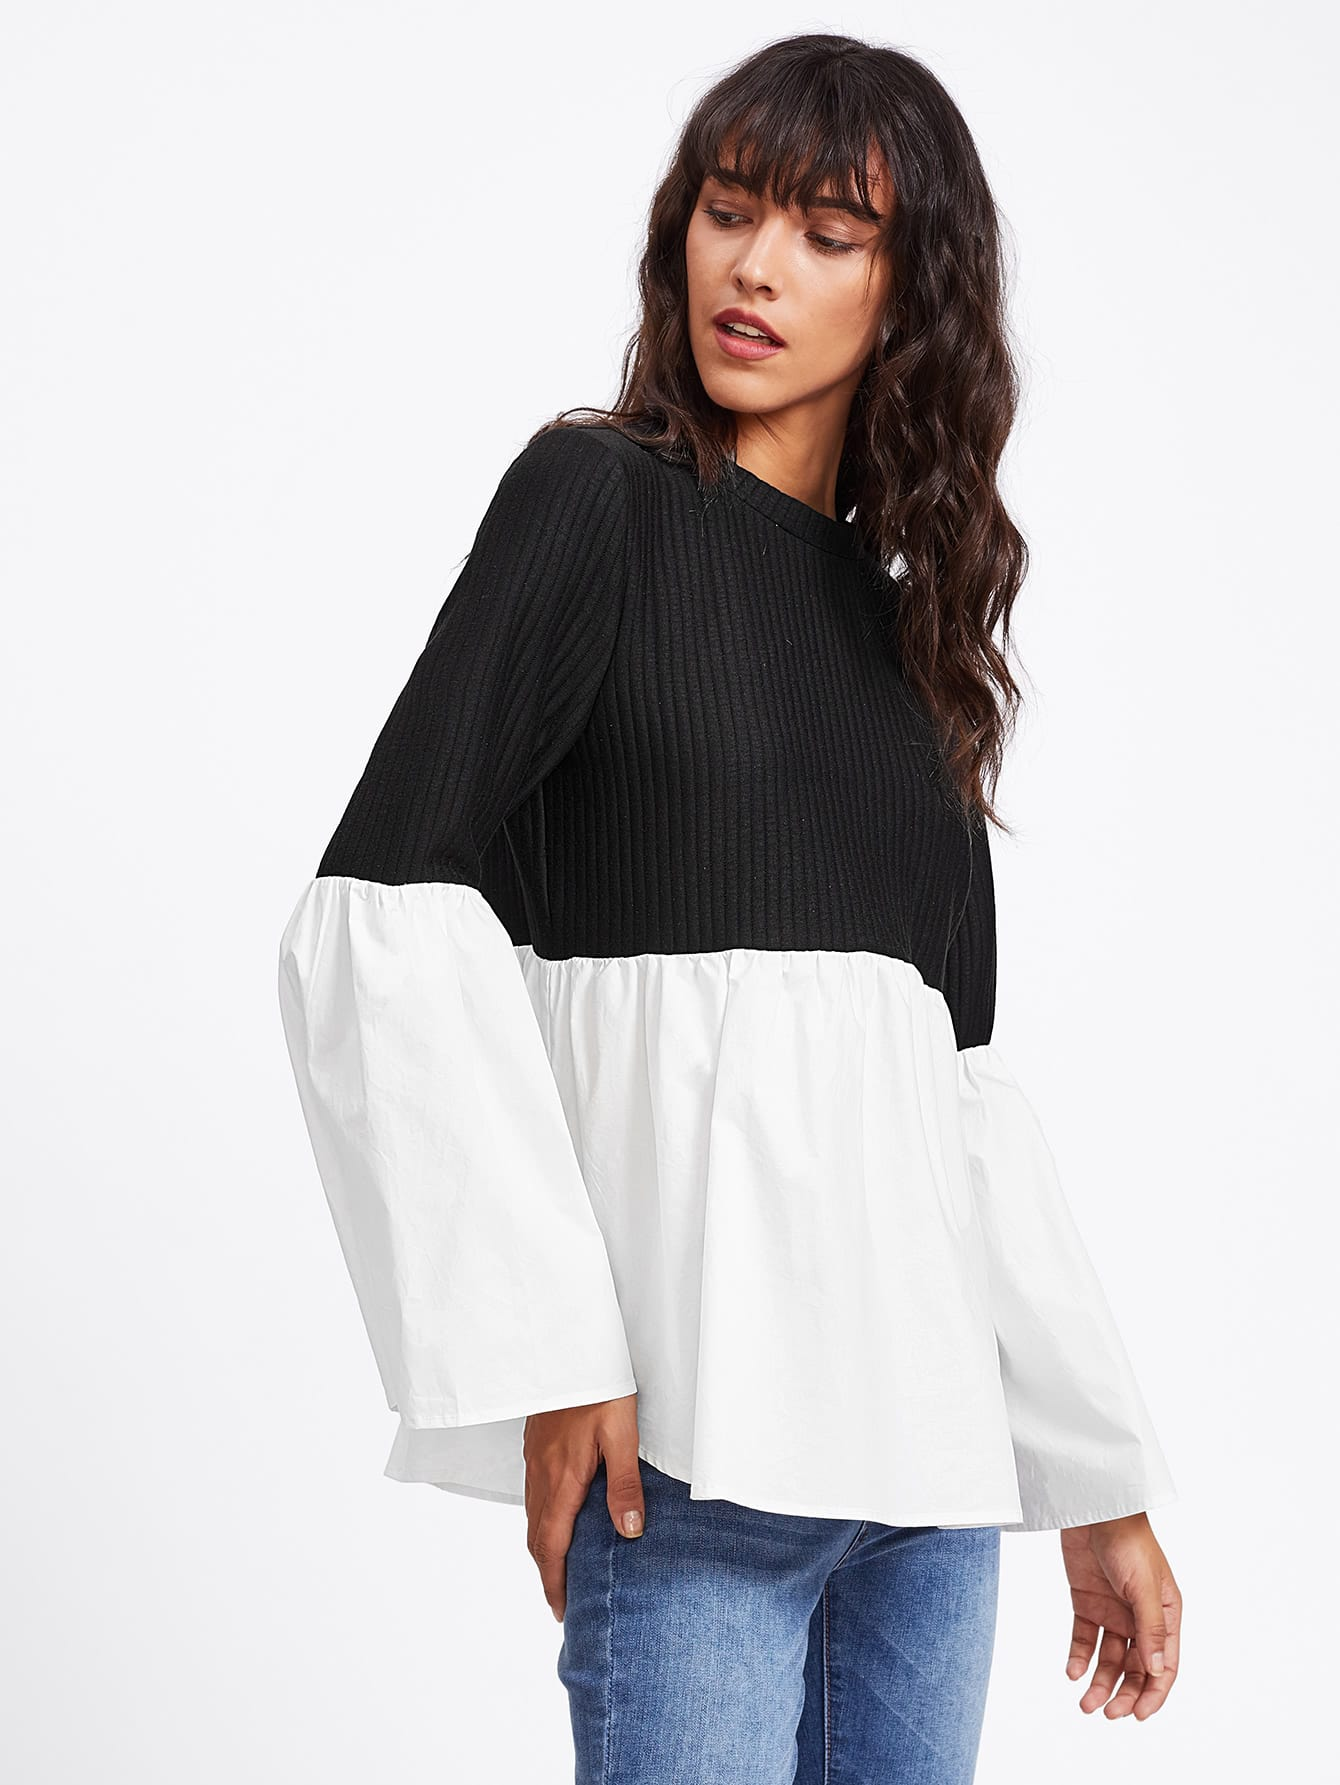 Fluted Sleeve Two Tone Mixed Media Ribbed Top